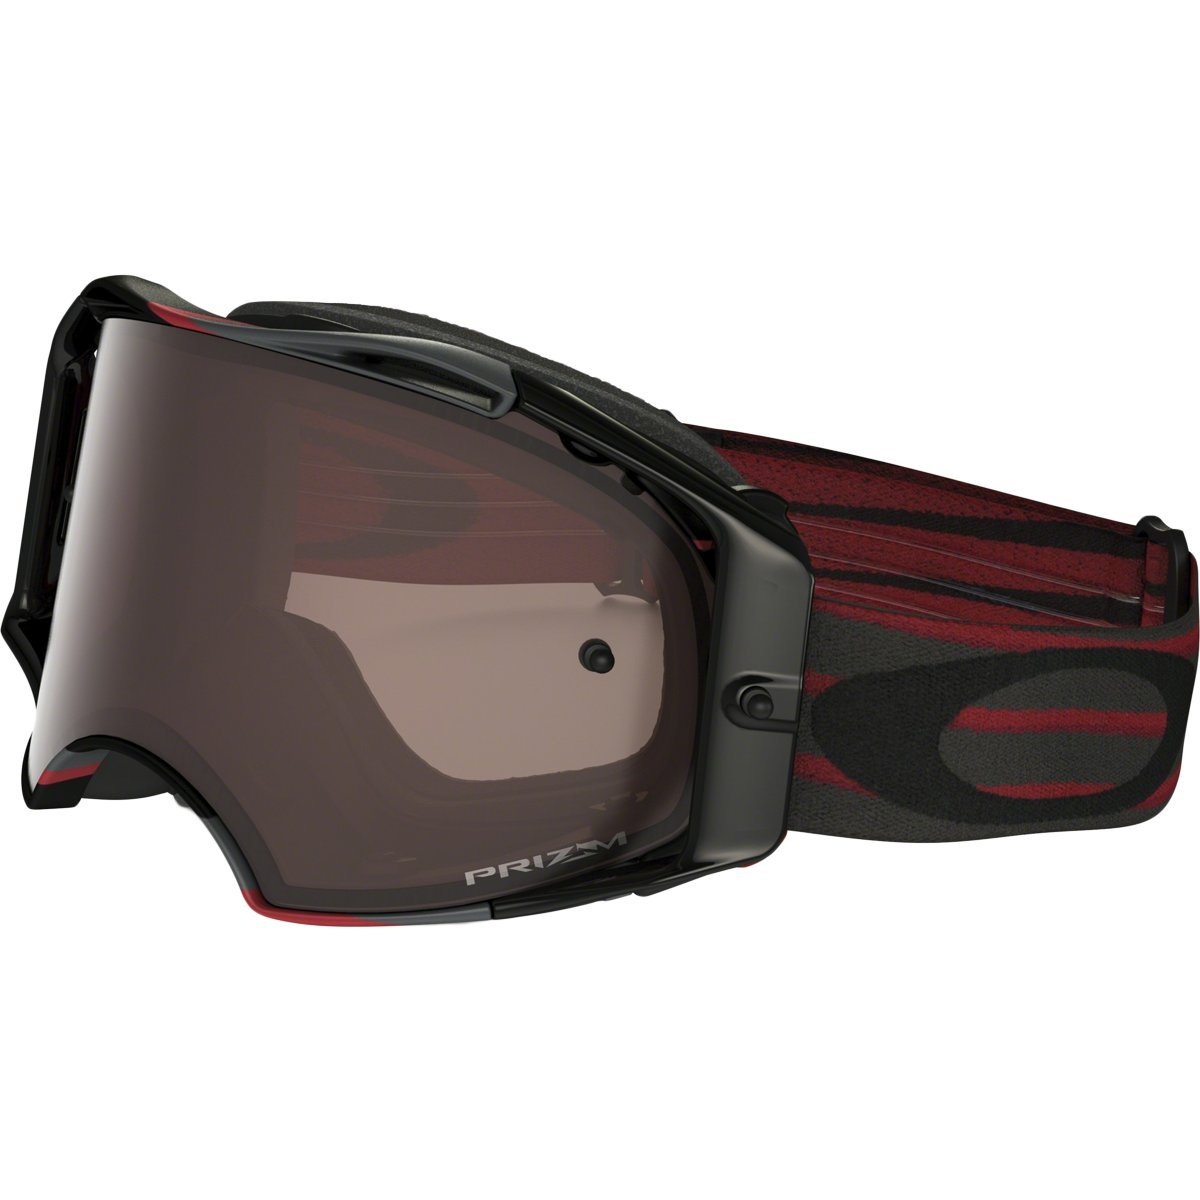 Oakley Airbrake MX Adult Off-Road Motorcycle Goggles Eyewear - Nemesis Red Gunmetal/Prizm MX Black/One Size Fits All